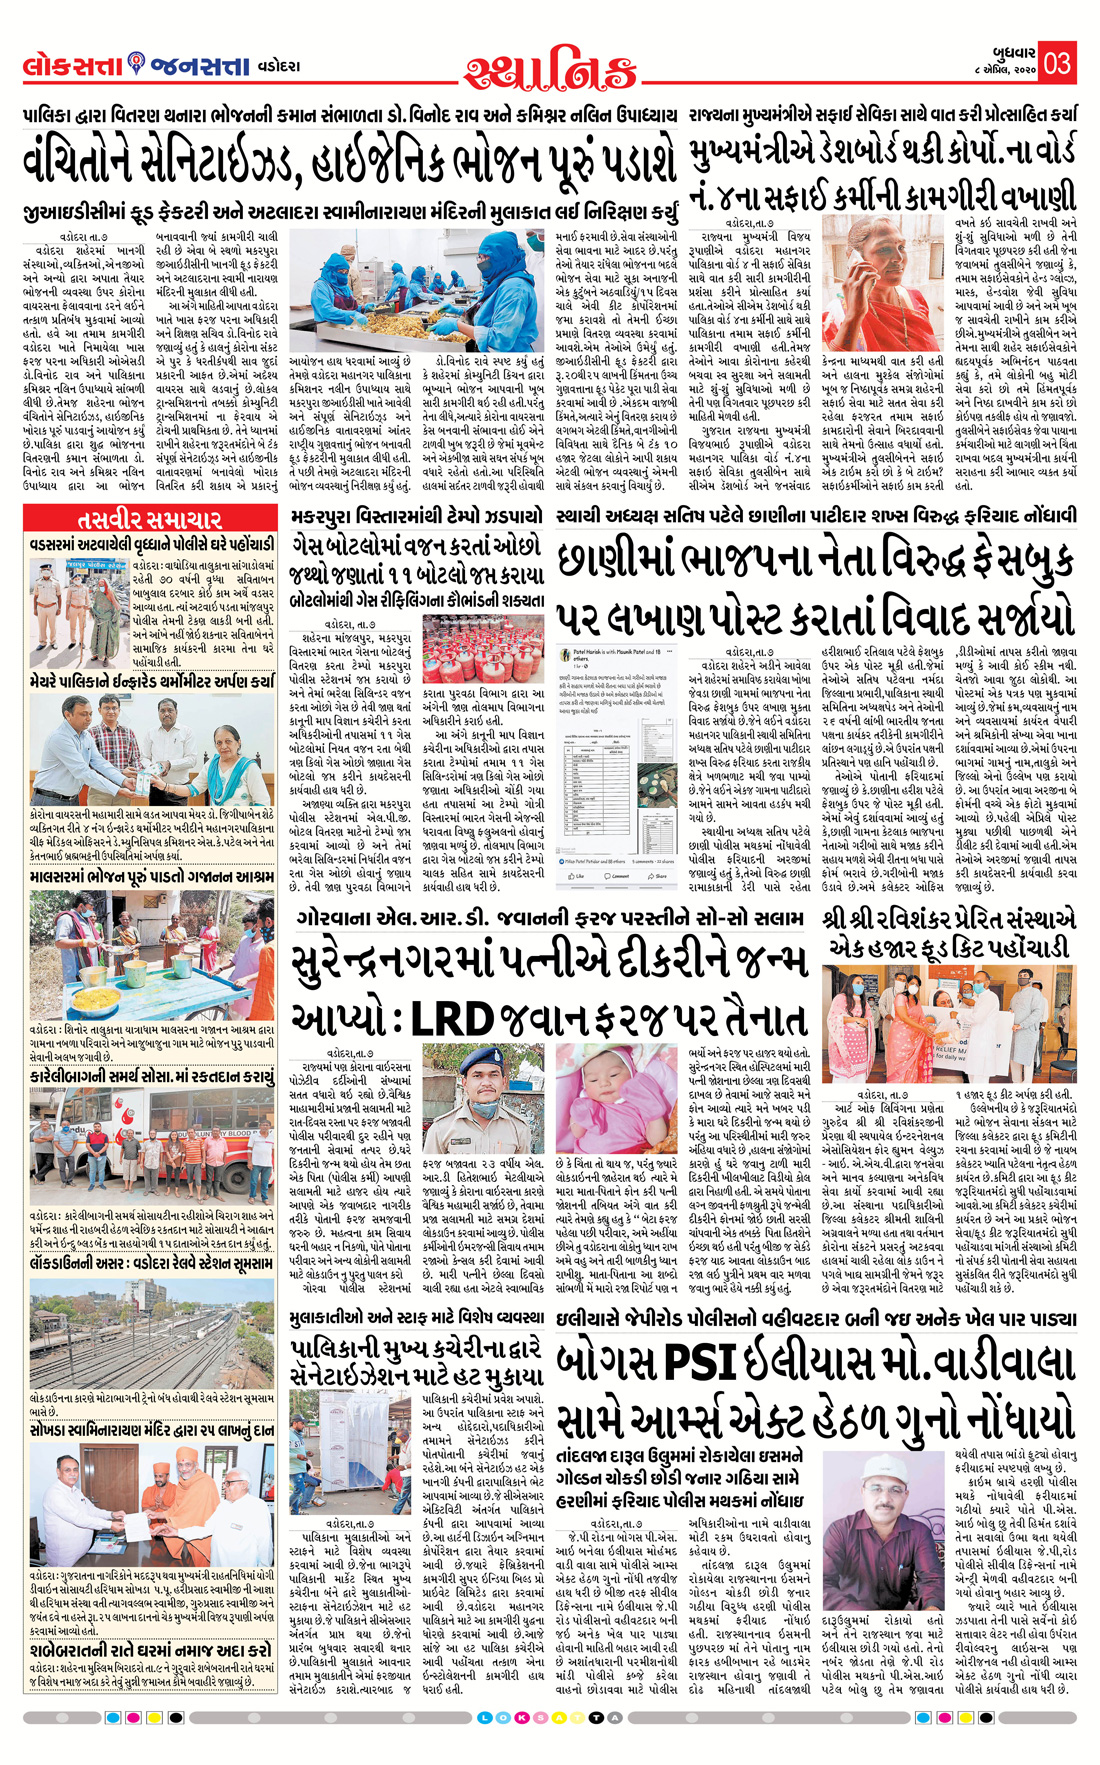 Loksatta Jansatta News Papaer E-paper dated 2020-04-08 | Page 3